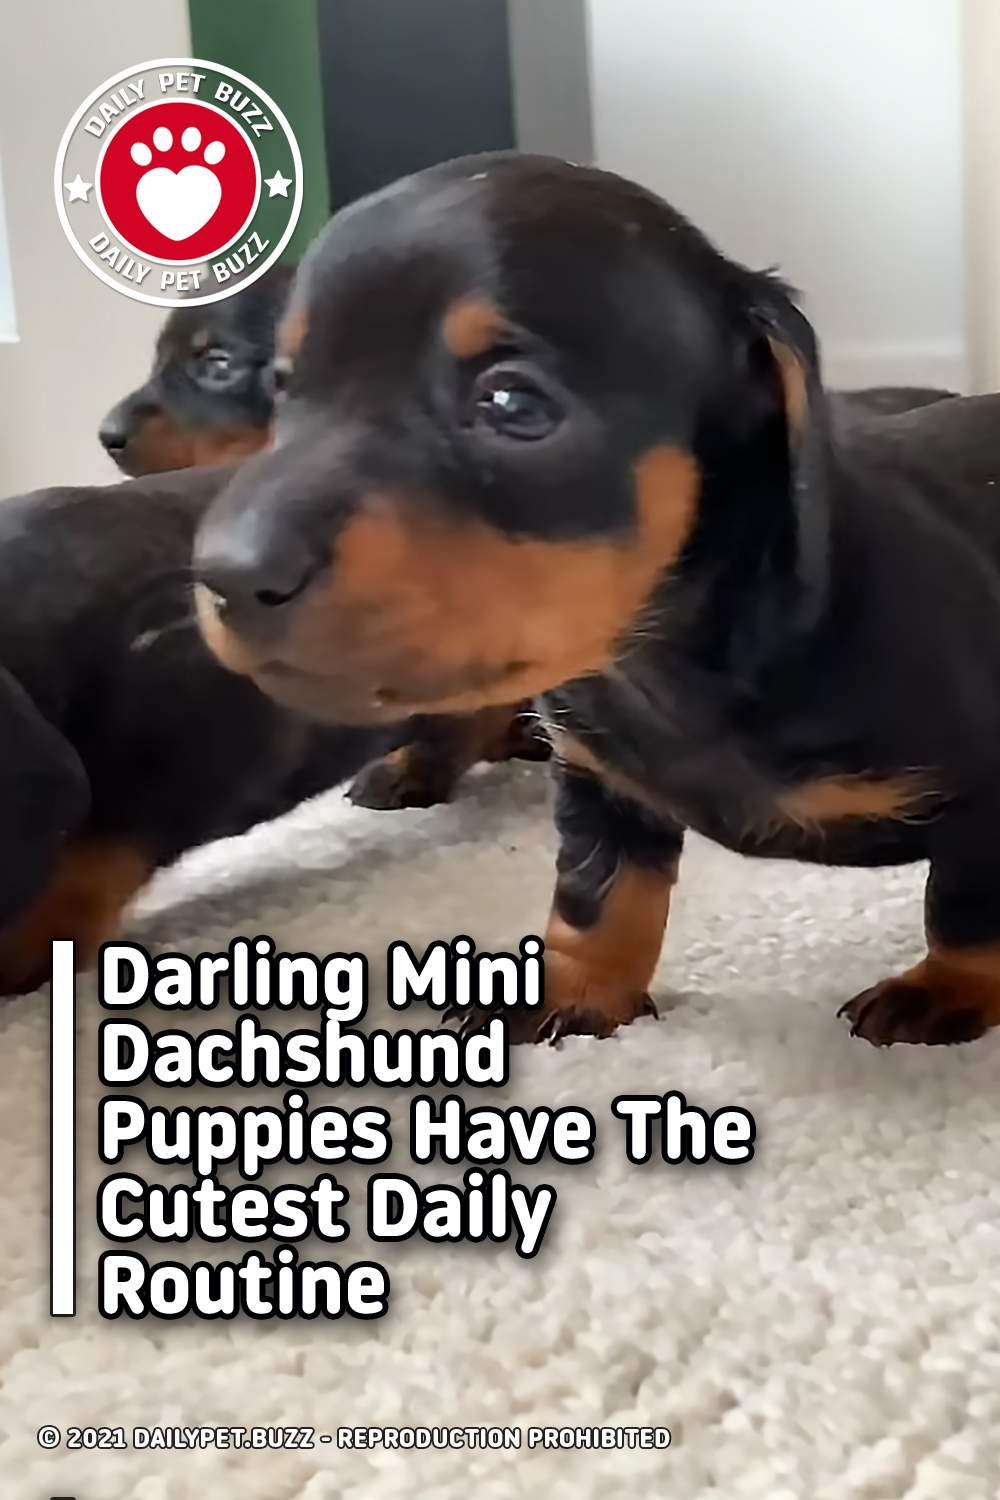 Darling Mini Dachshund Puppies Have The Cutest Daily Routine